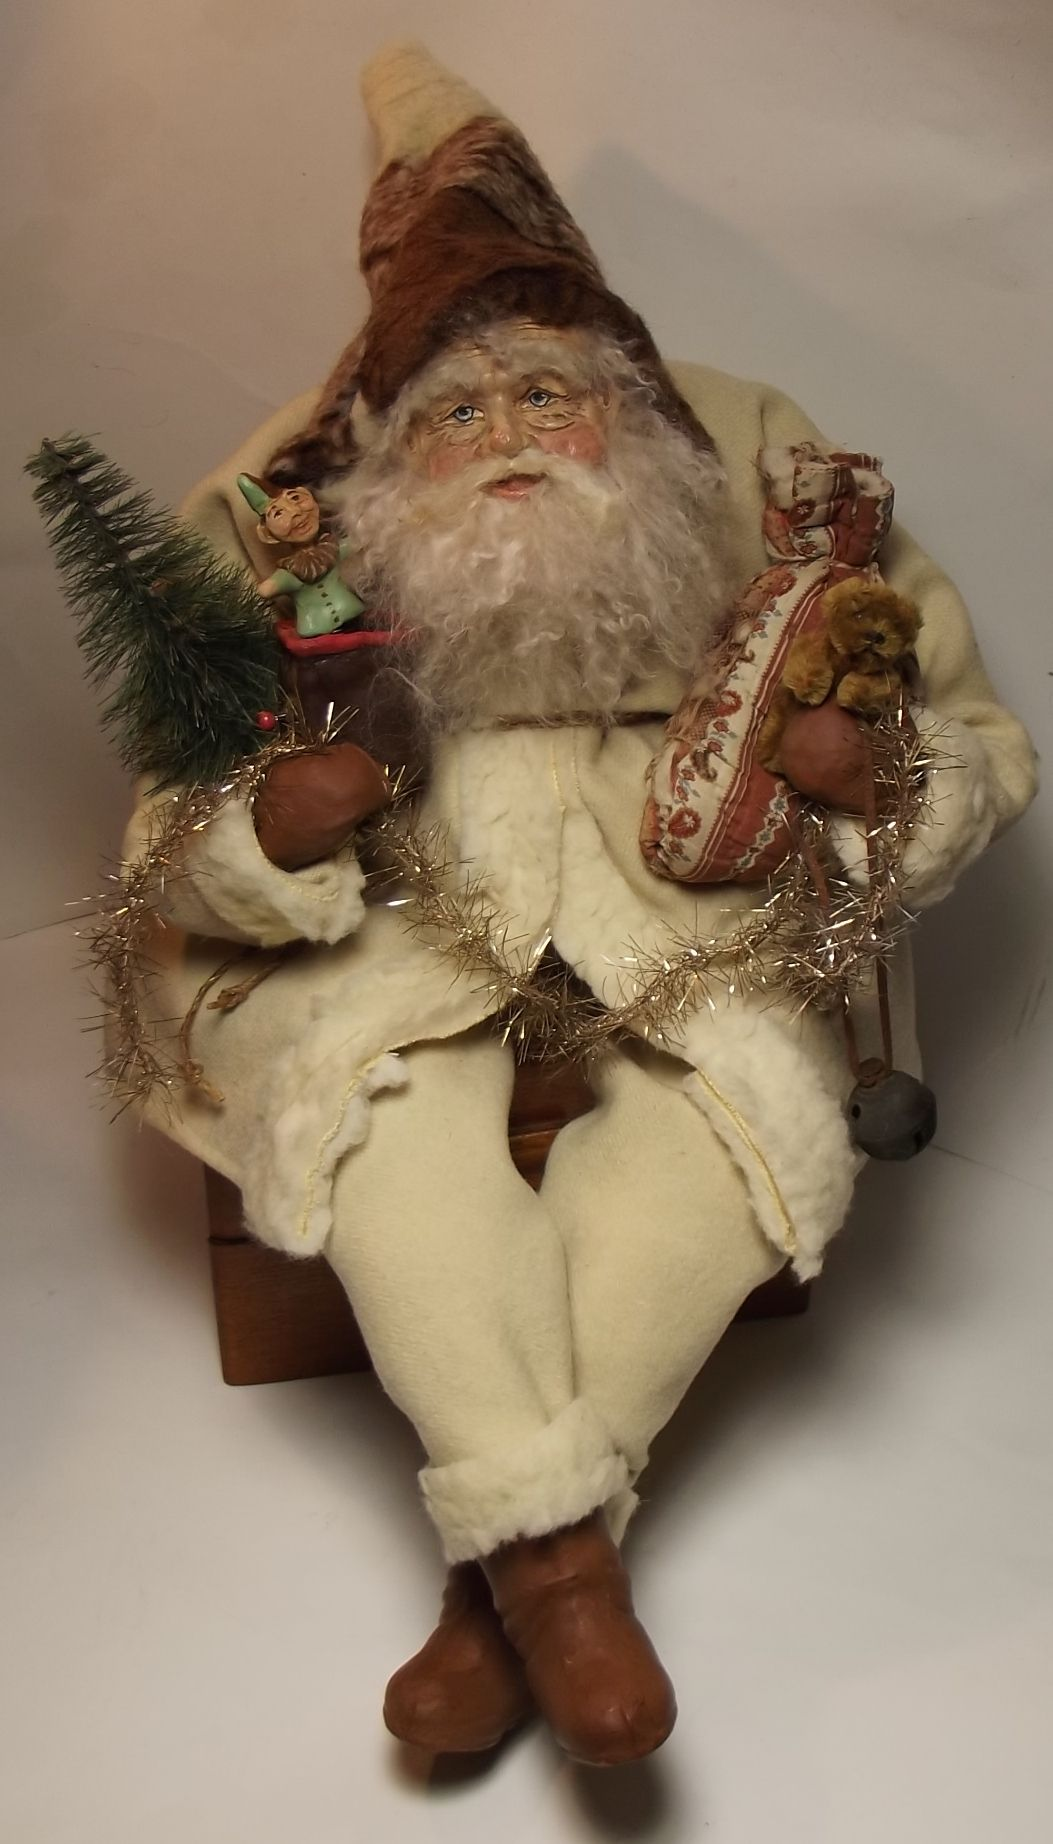 handmade sitting santa claus jack in the box by kim sweetkims klausvintage wools - Jack In The Box Open Christmas Day